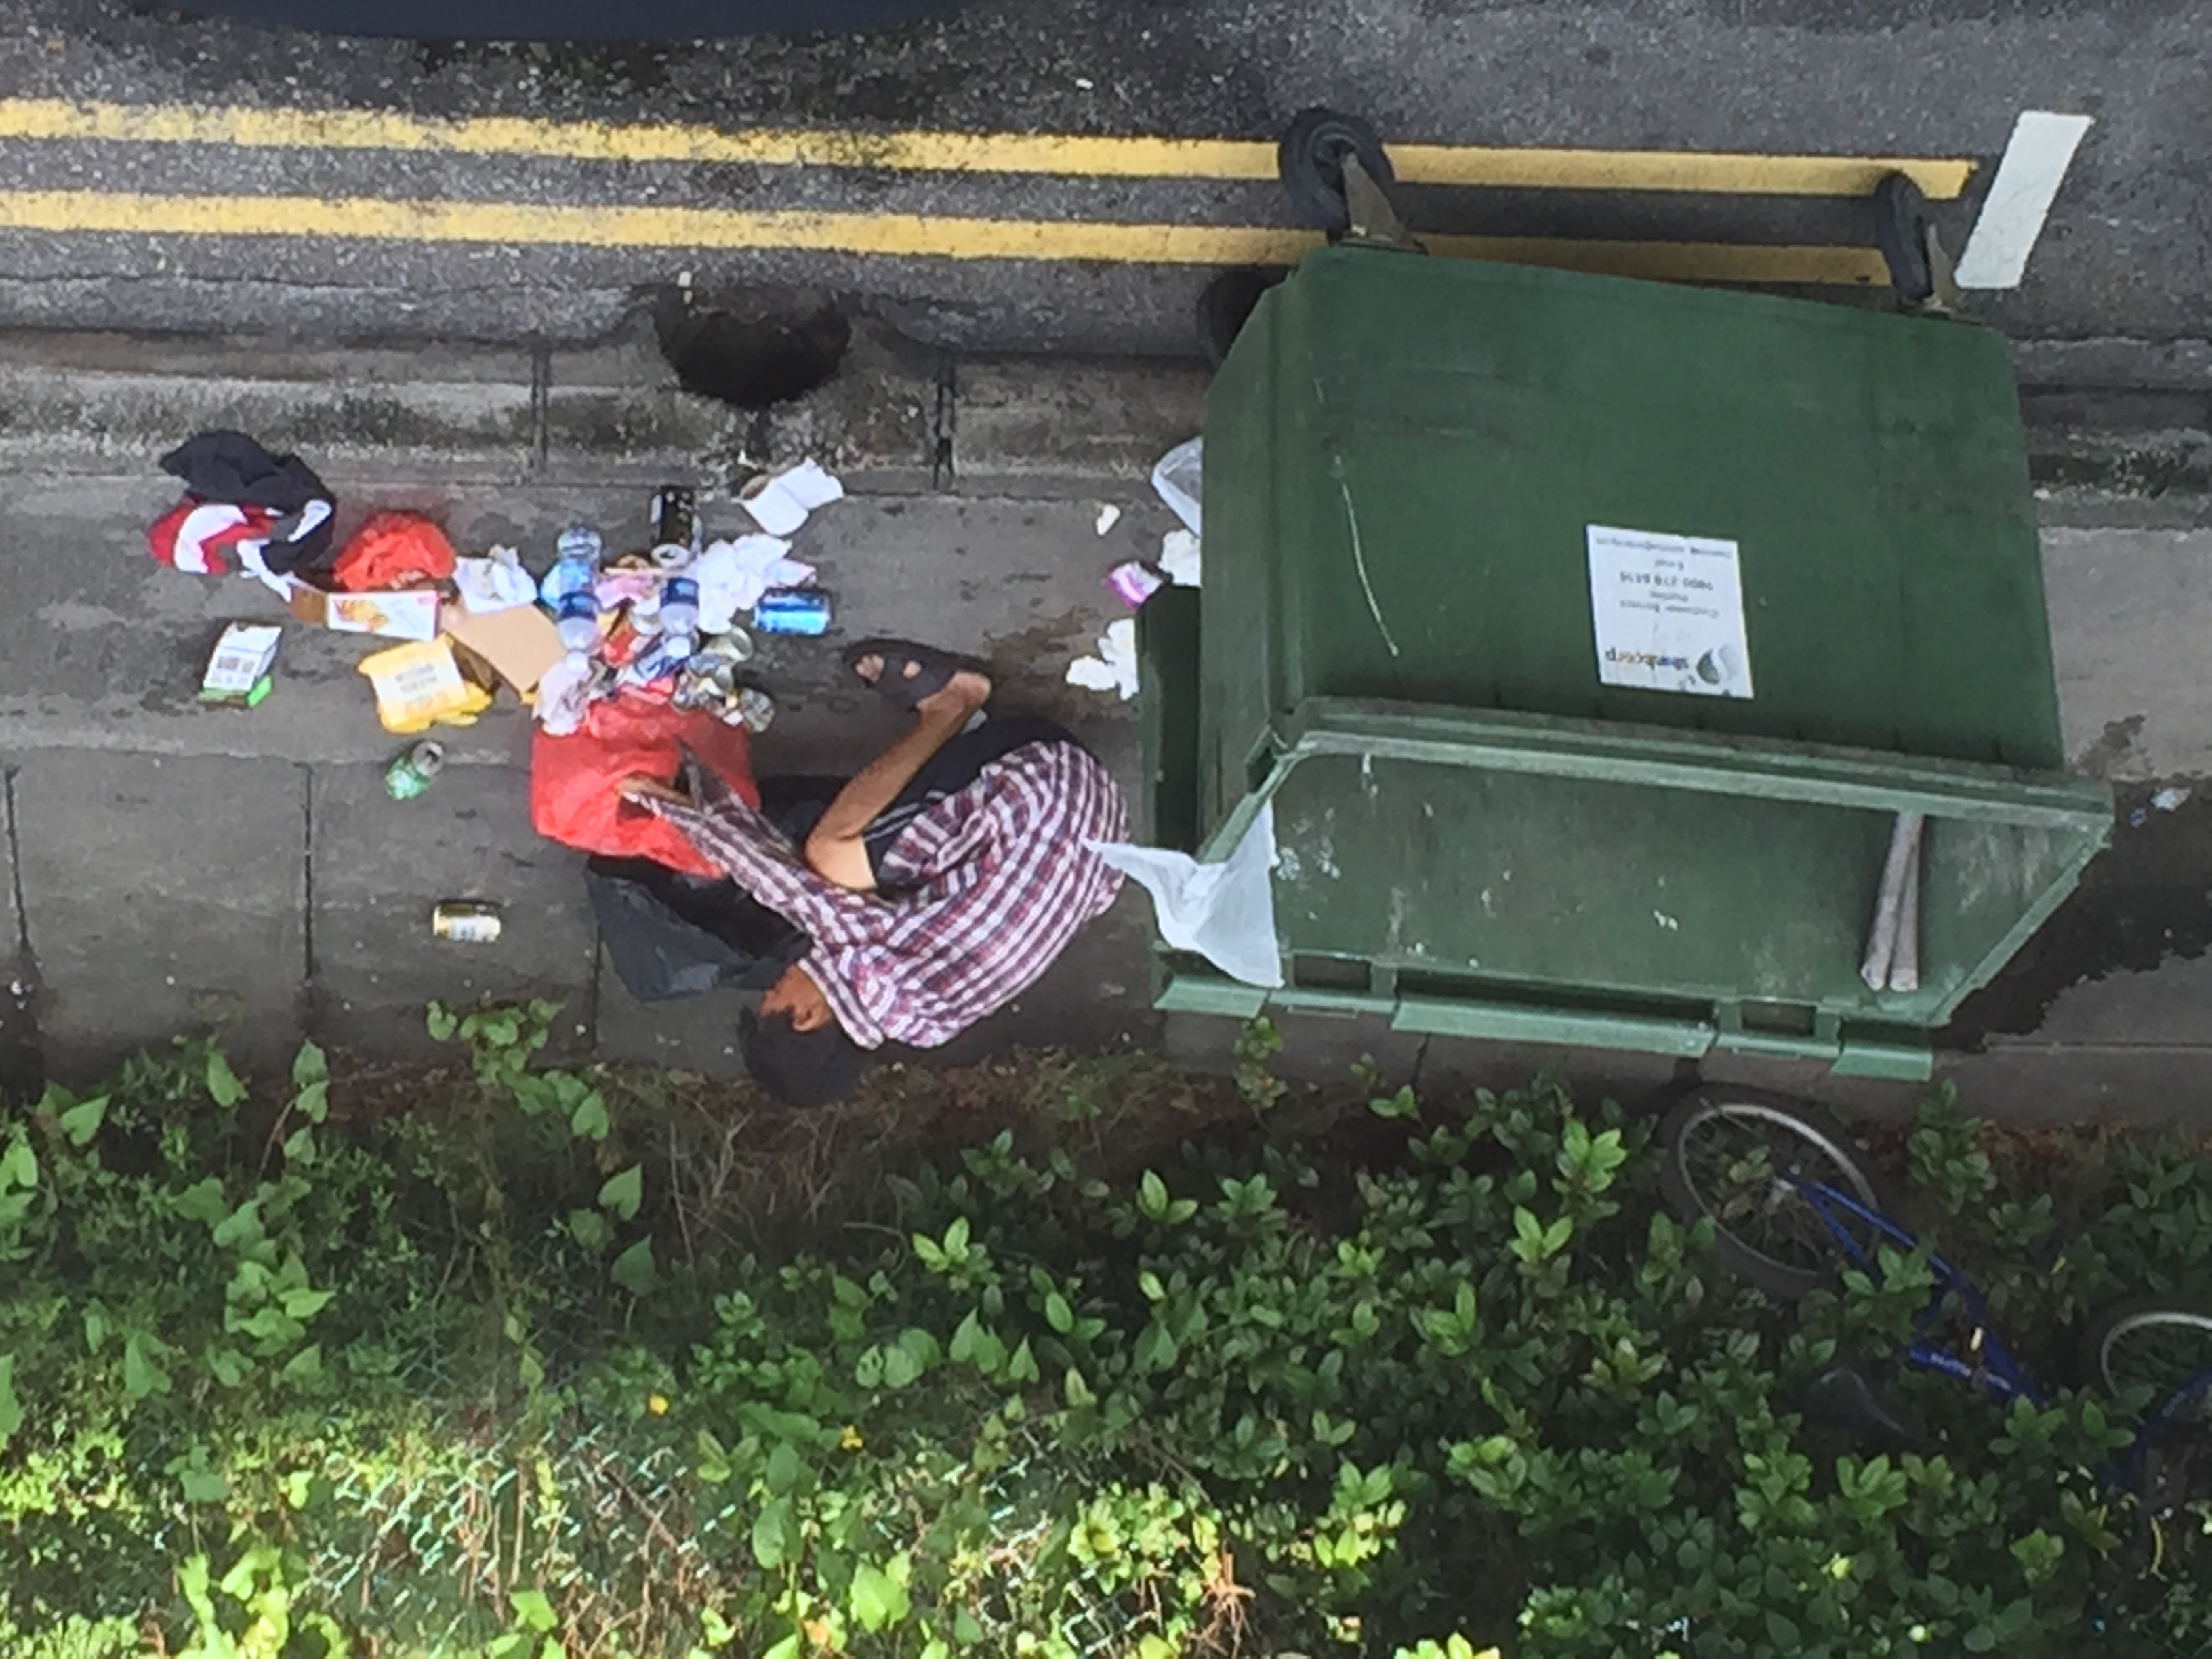 File:Guy sadly dumpster diving outside my window.jpg - Wikimedia Commons